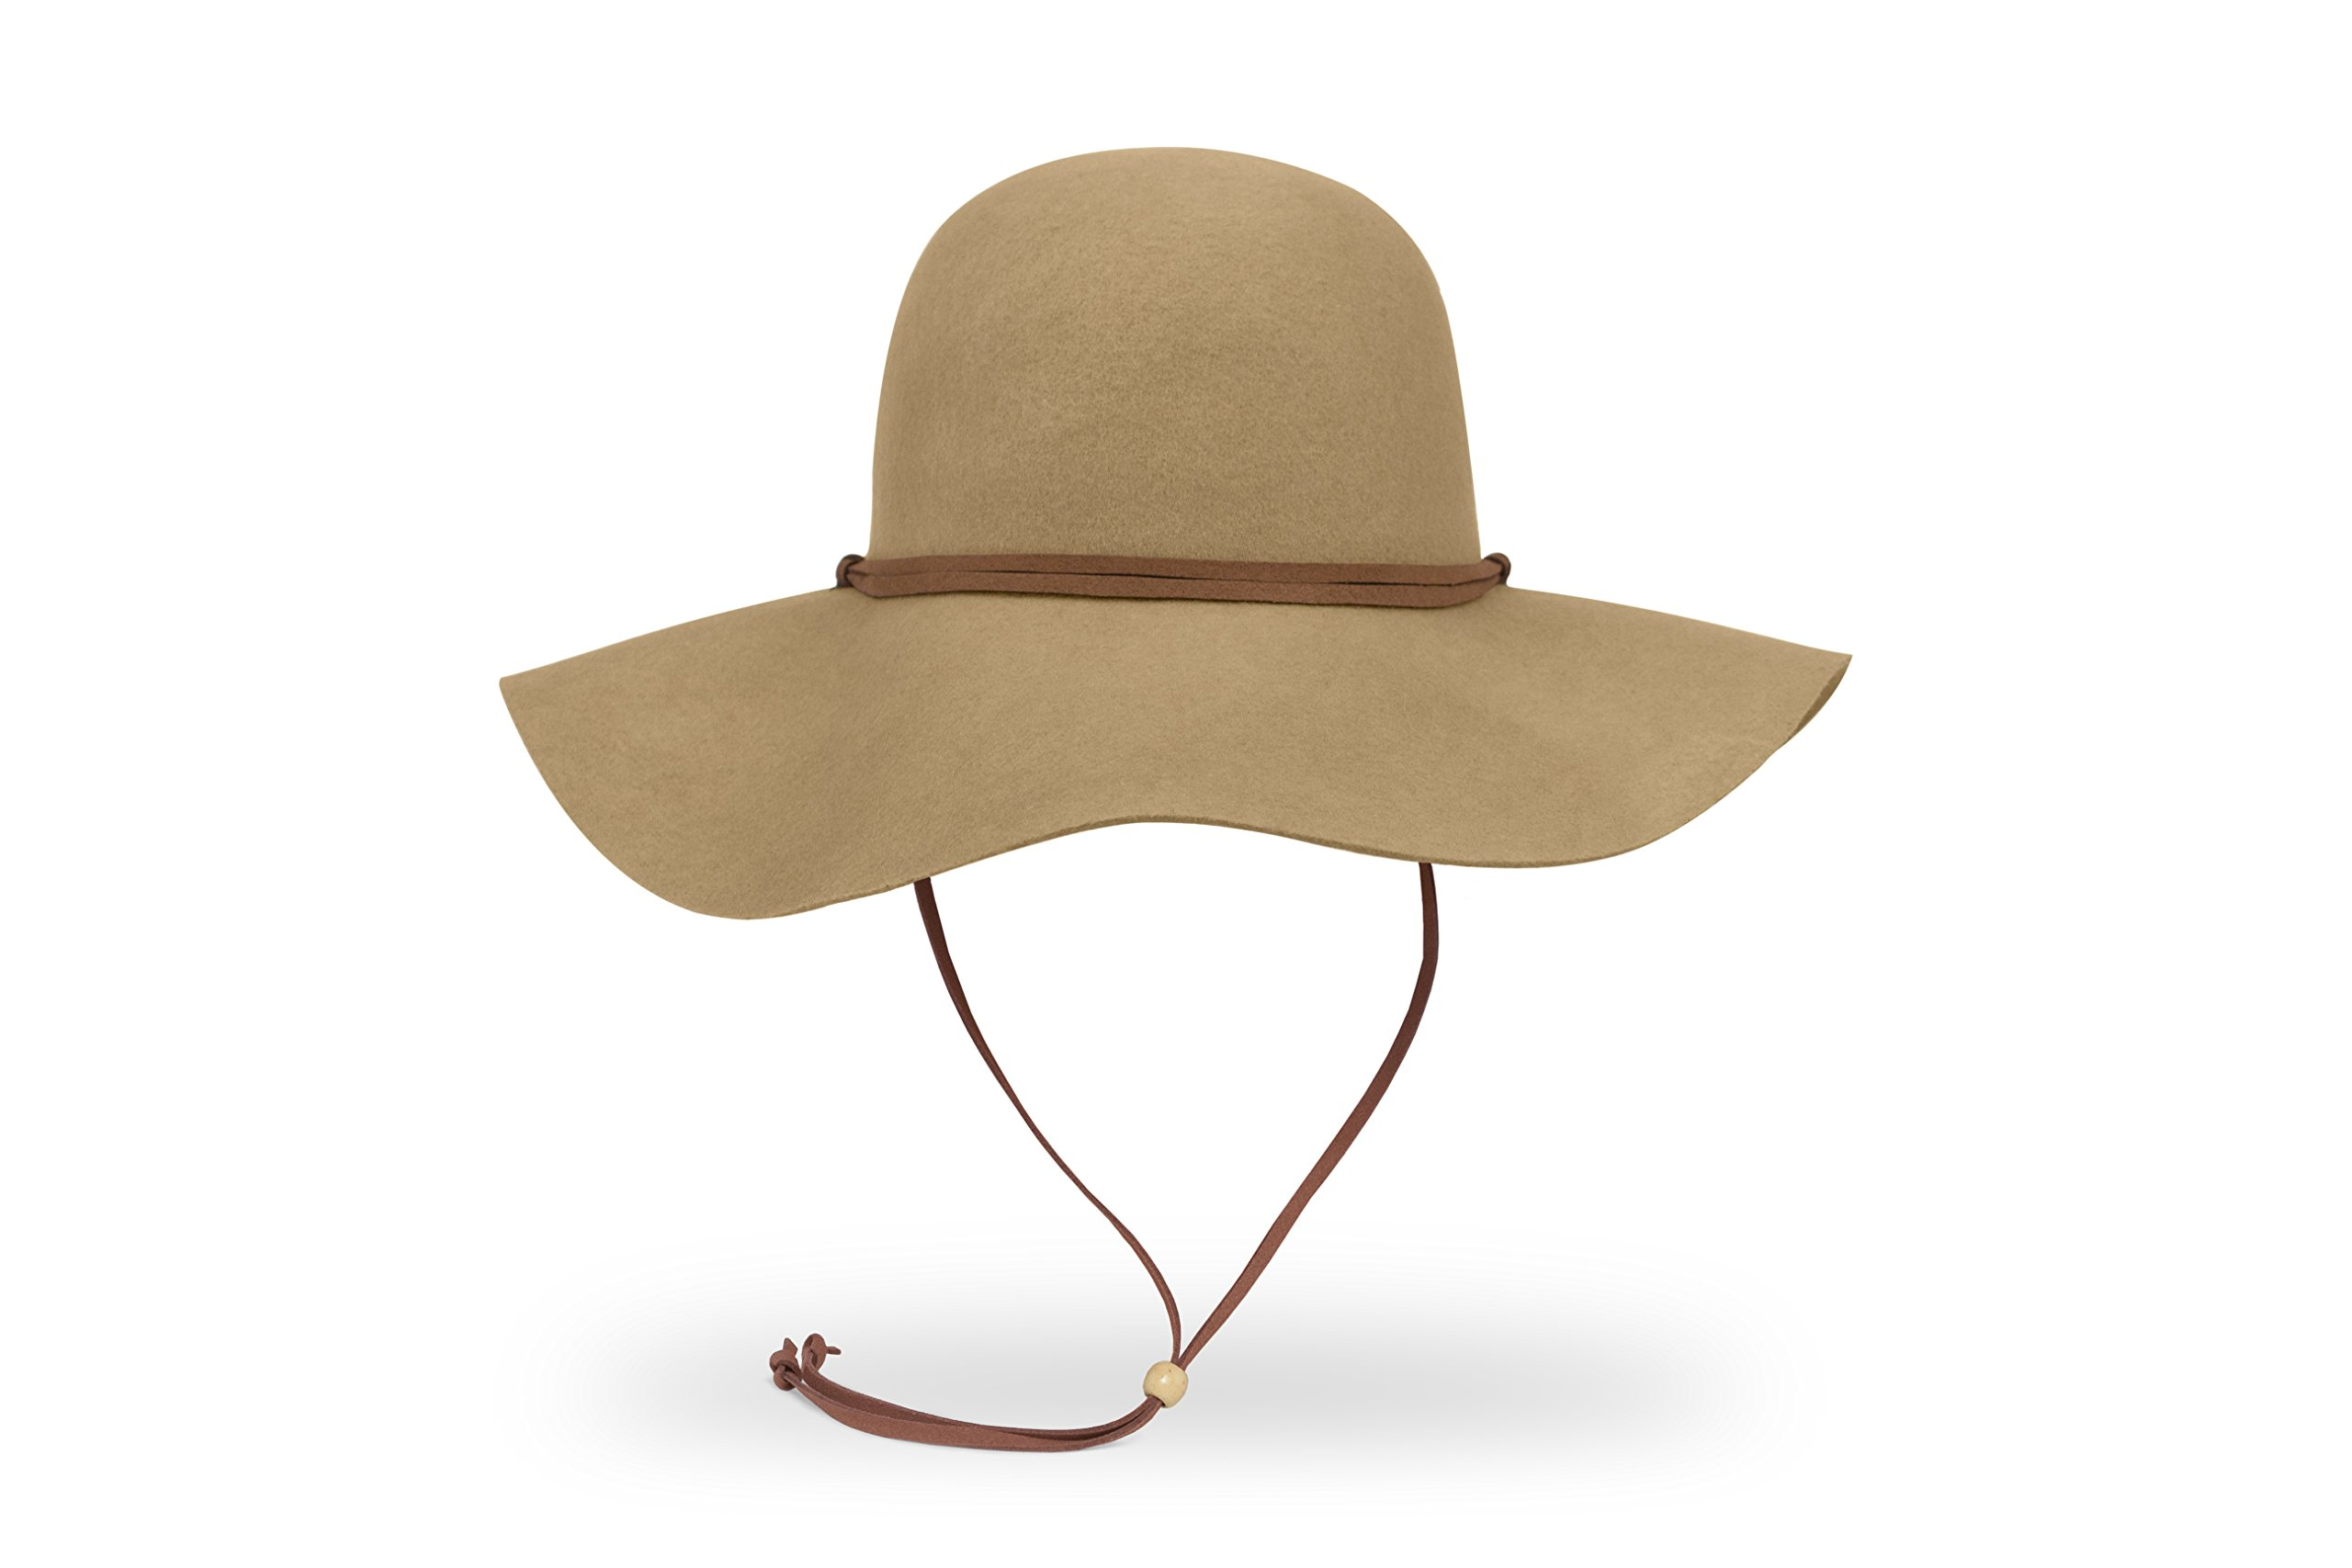 Sunday Afternoons Women's Vivian Hat, Fawn, One Size by Sunday Afternoons